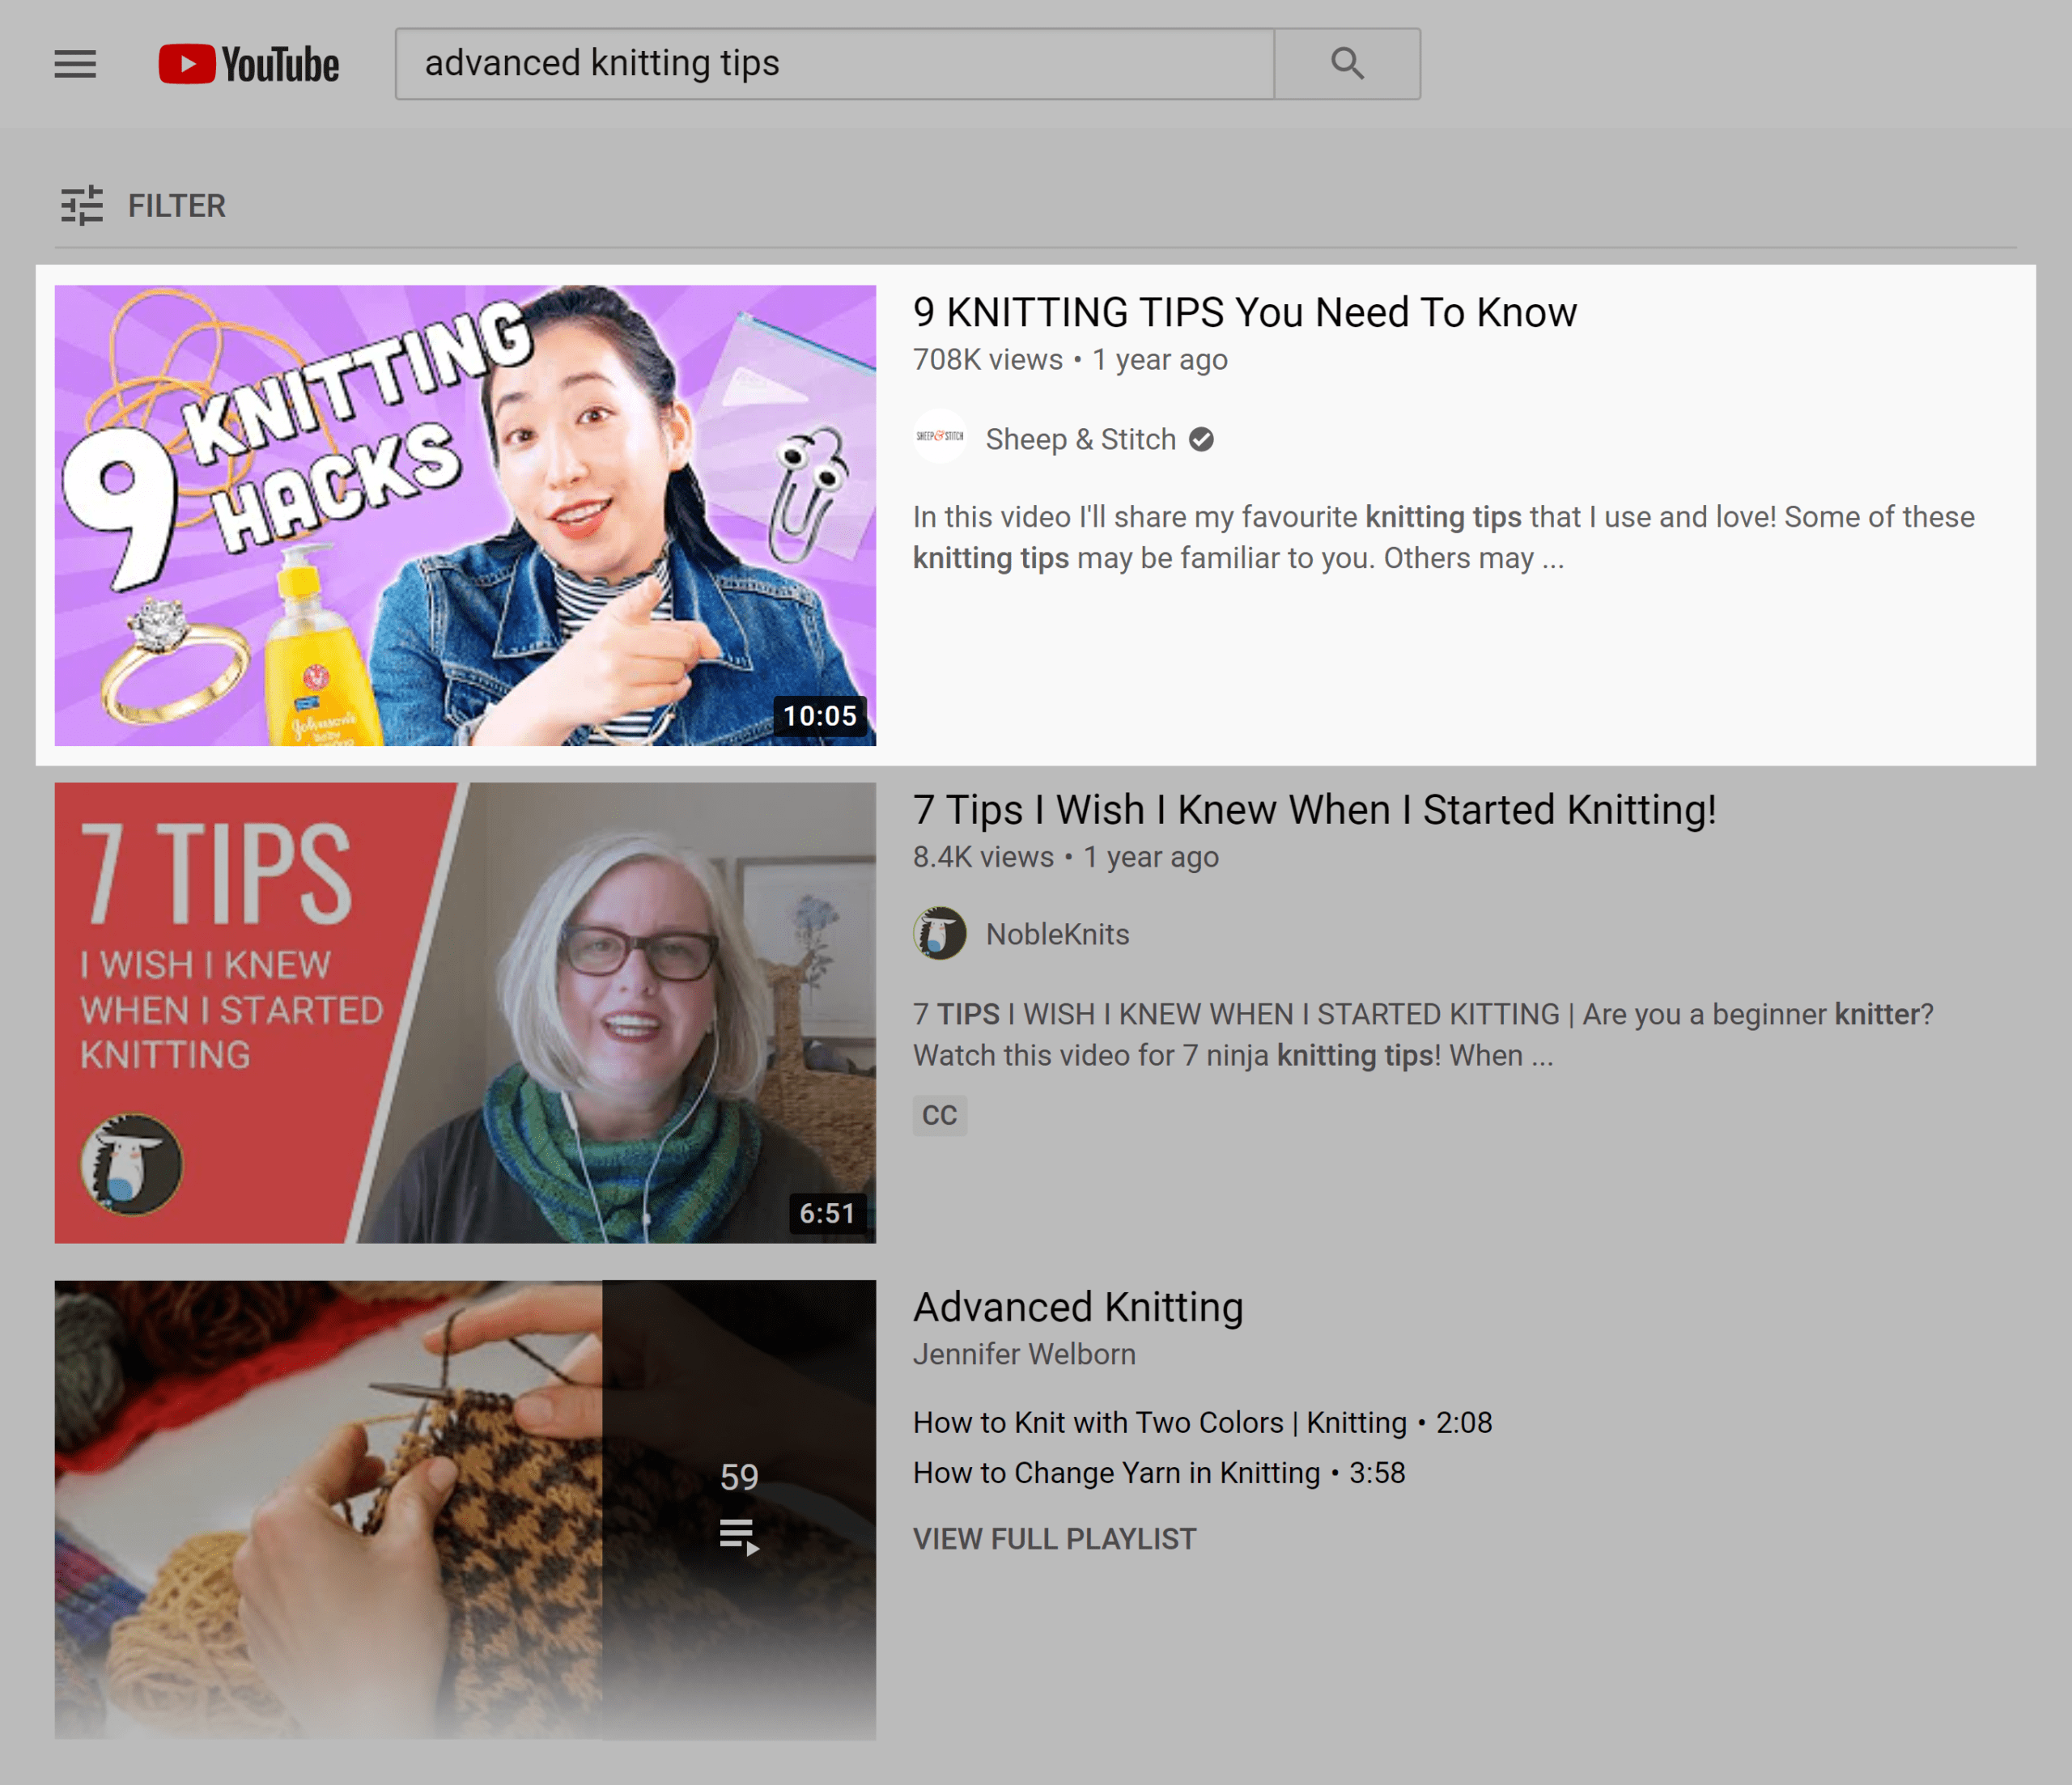 YouTube search results – Advanced knitting tips